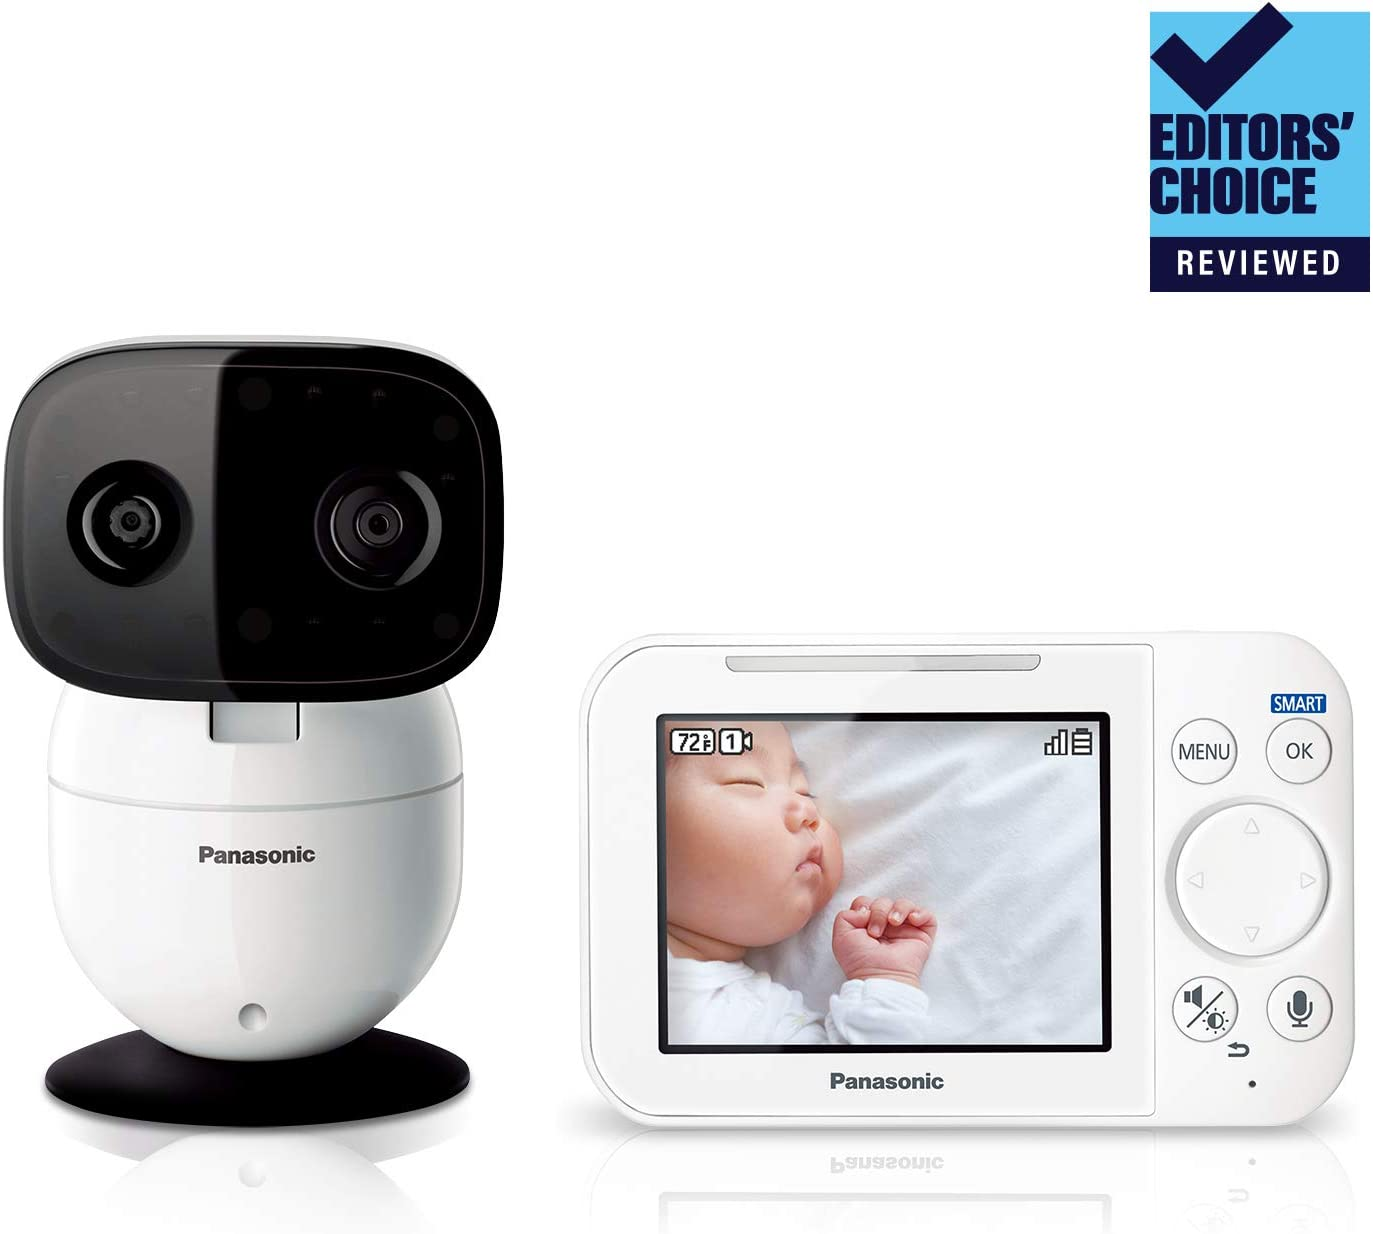 Panasonic Video Baby Monitor with Remote Pan Tilt Zoom, Extra Long Audio Video Range, 2 Way Talk Lullaby or Noises – 1 Camera KX-HN4101W White Updated 2019 Version